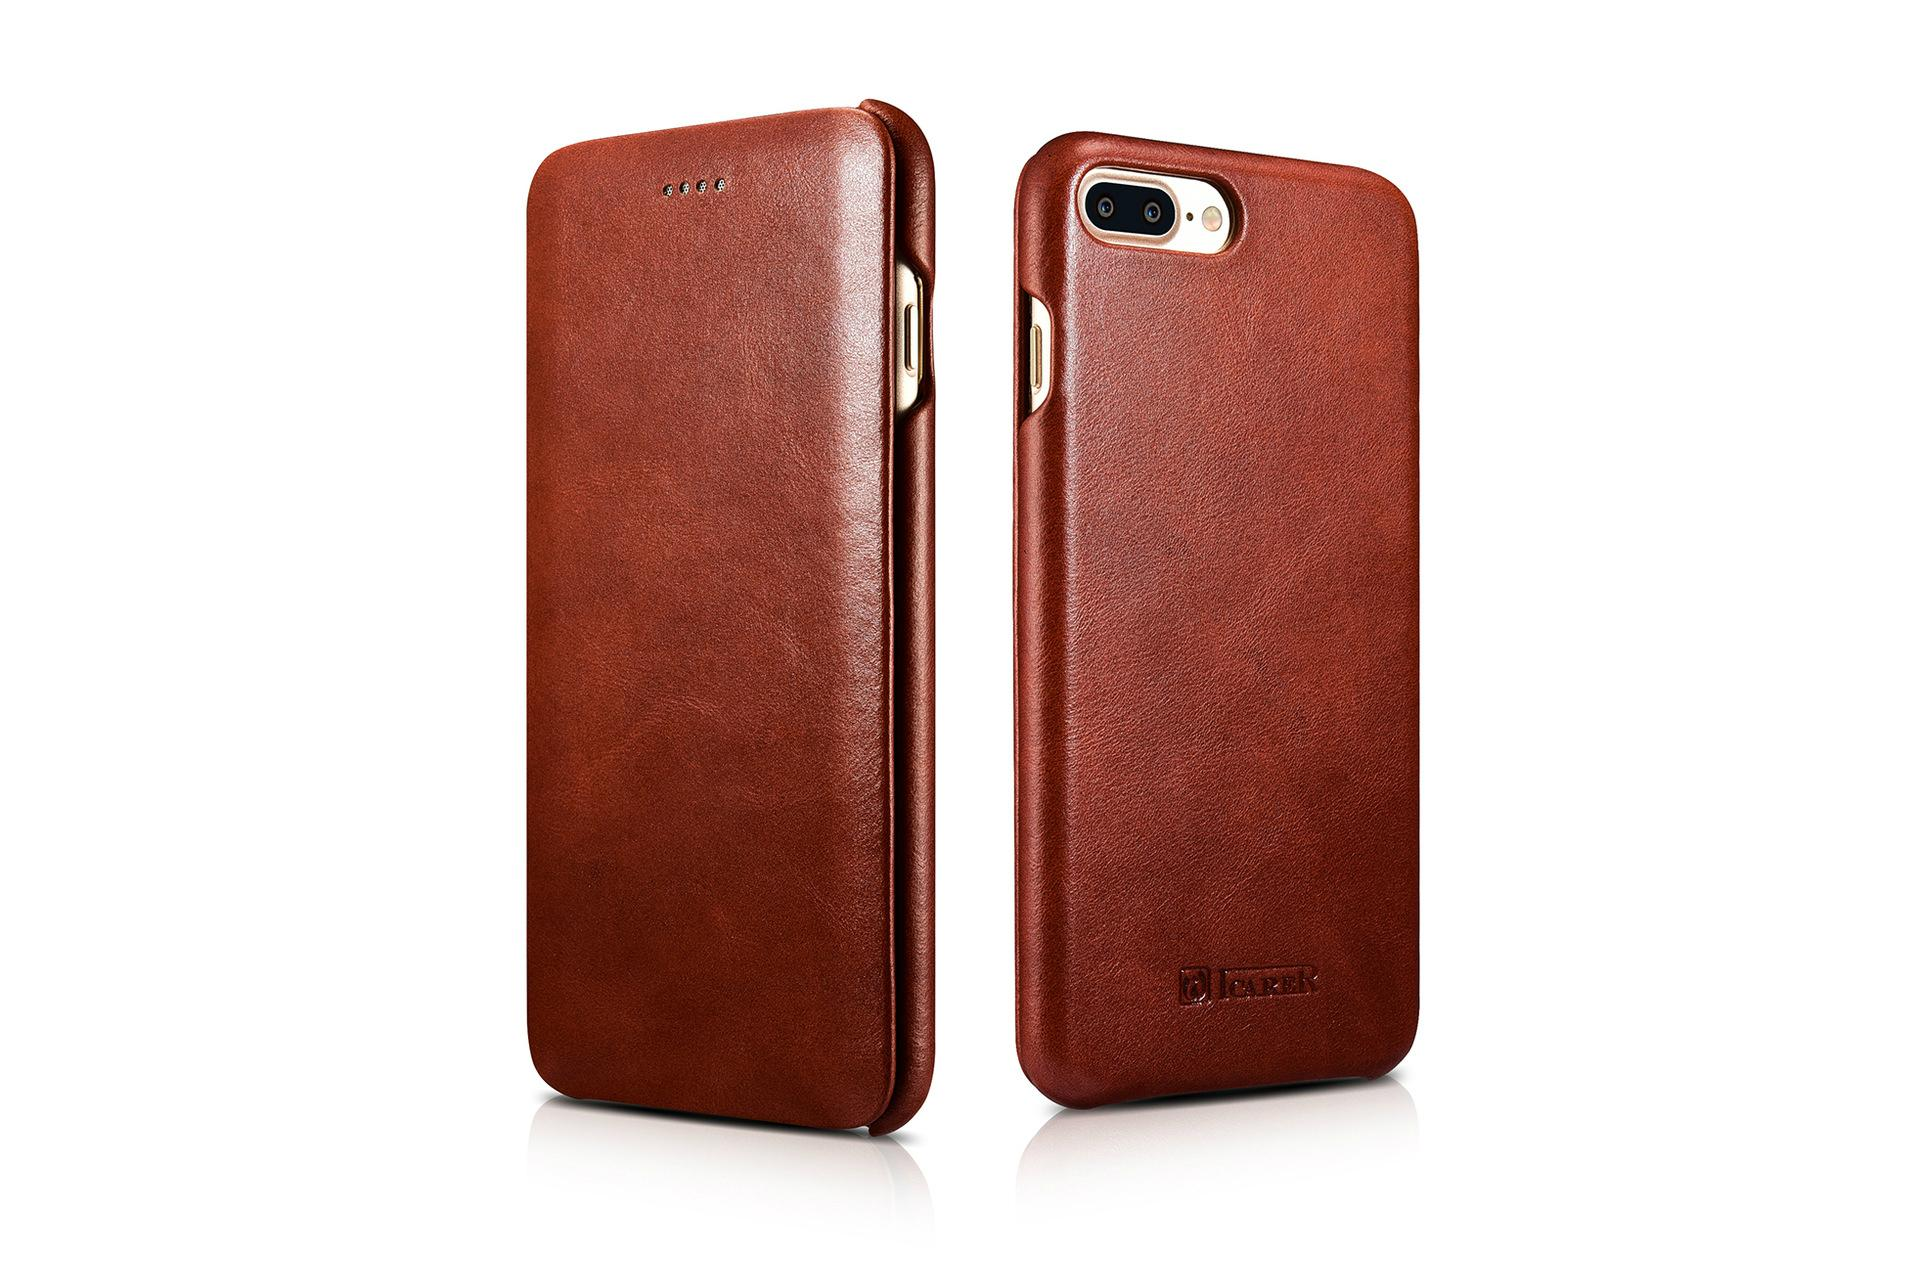 iCarer iPhone 7 Plus Curved Edge Vintage Series Genuine Leather Case 3